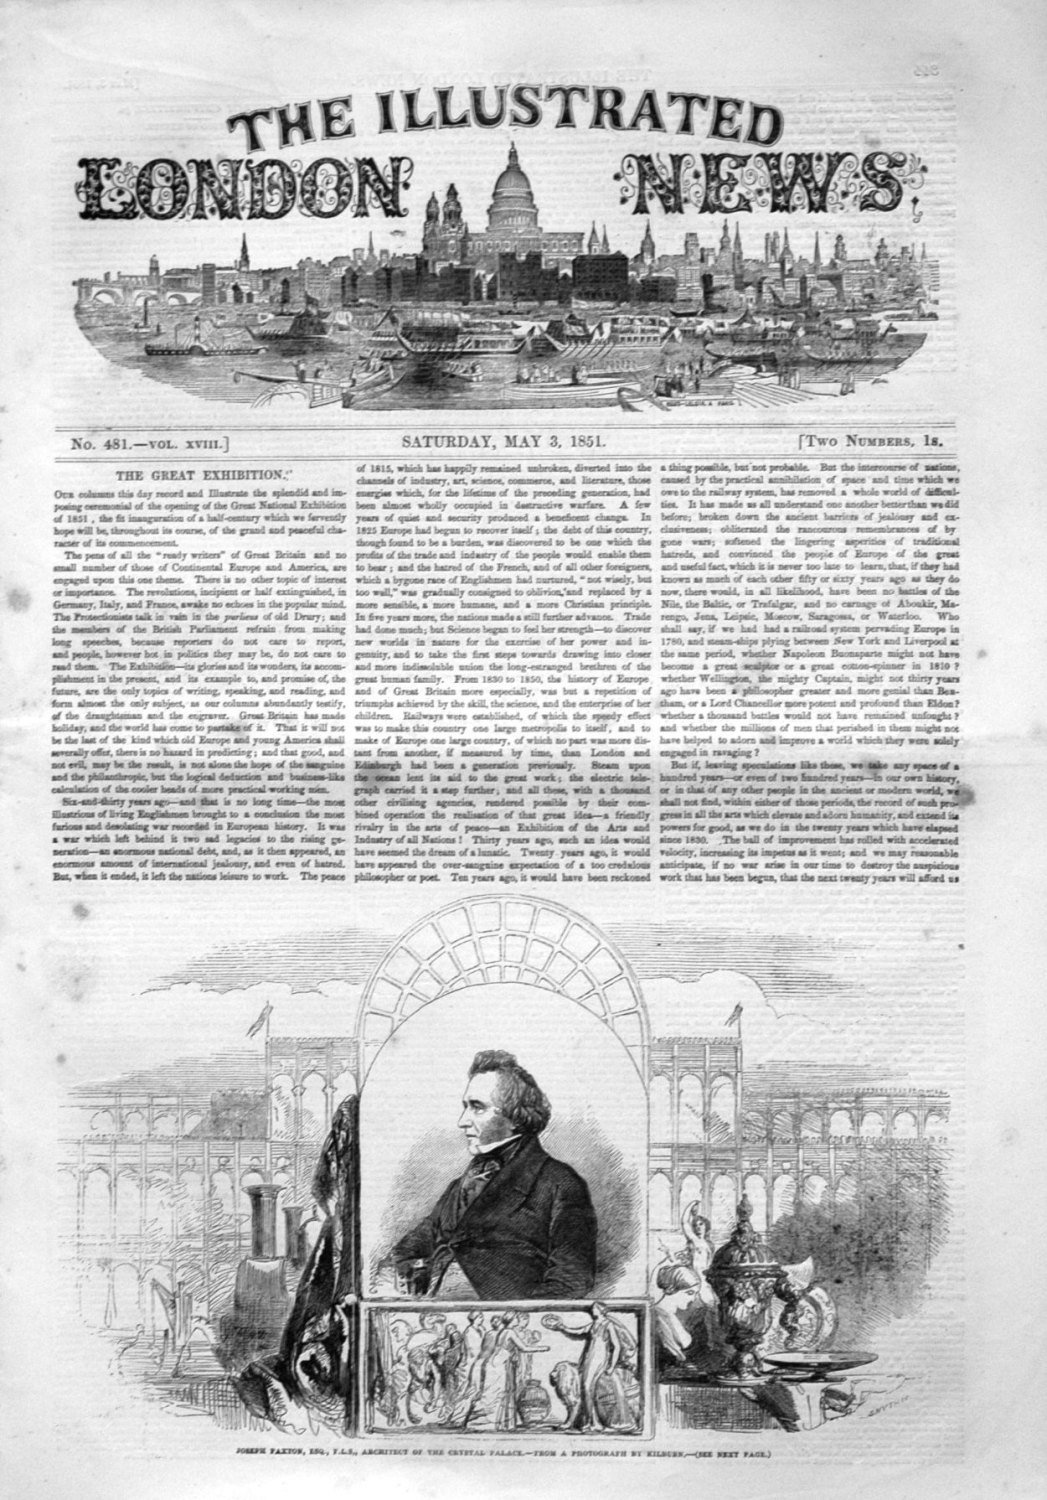 Illustrated London News May 3rd 1851.